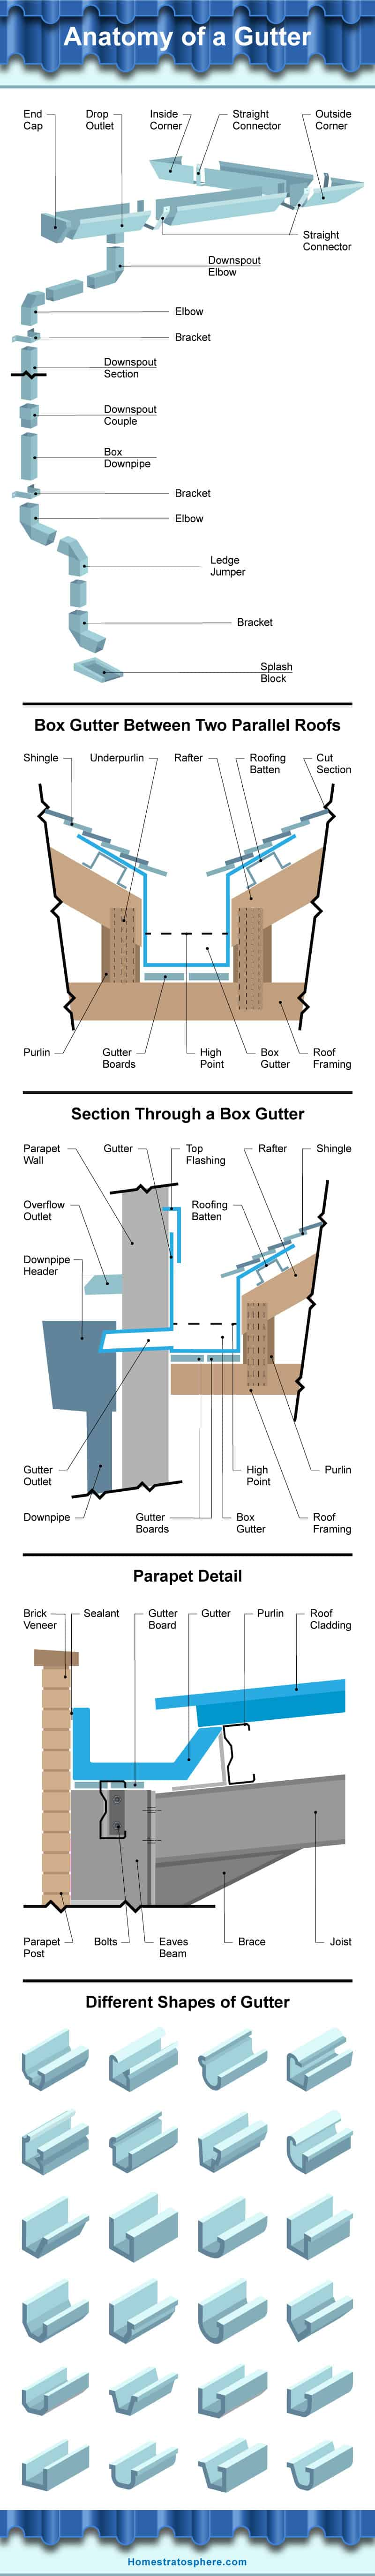 3D chart showcasing the gutter system for houses.